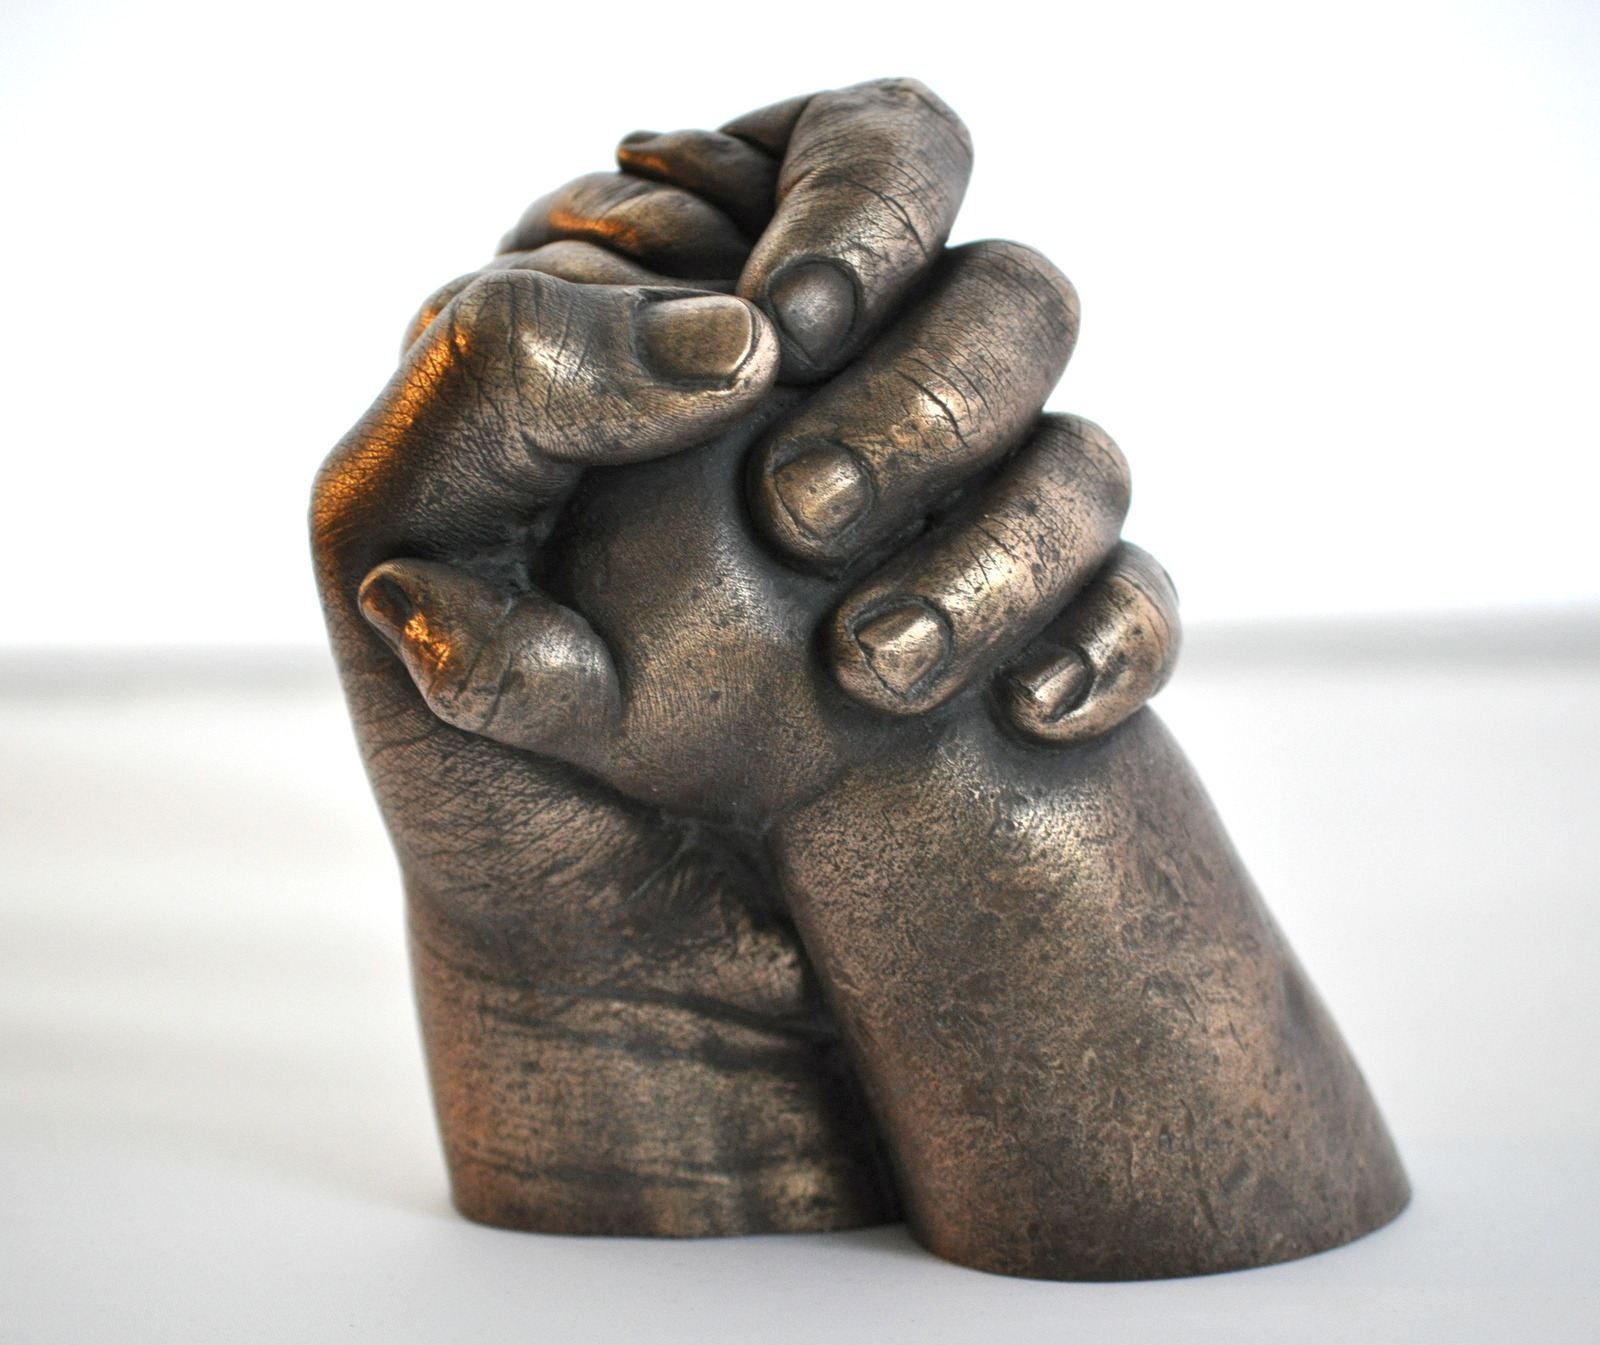 Sibling holding hands in bronze resin